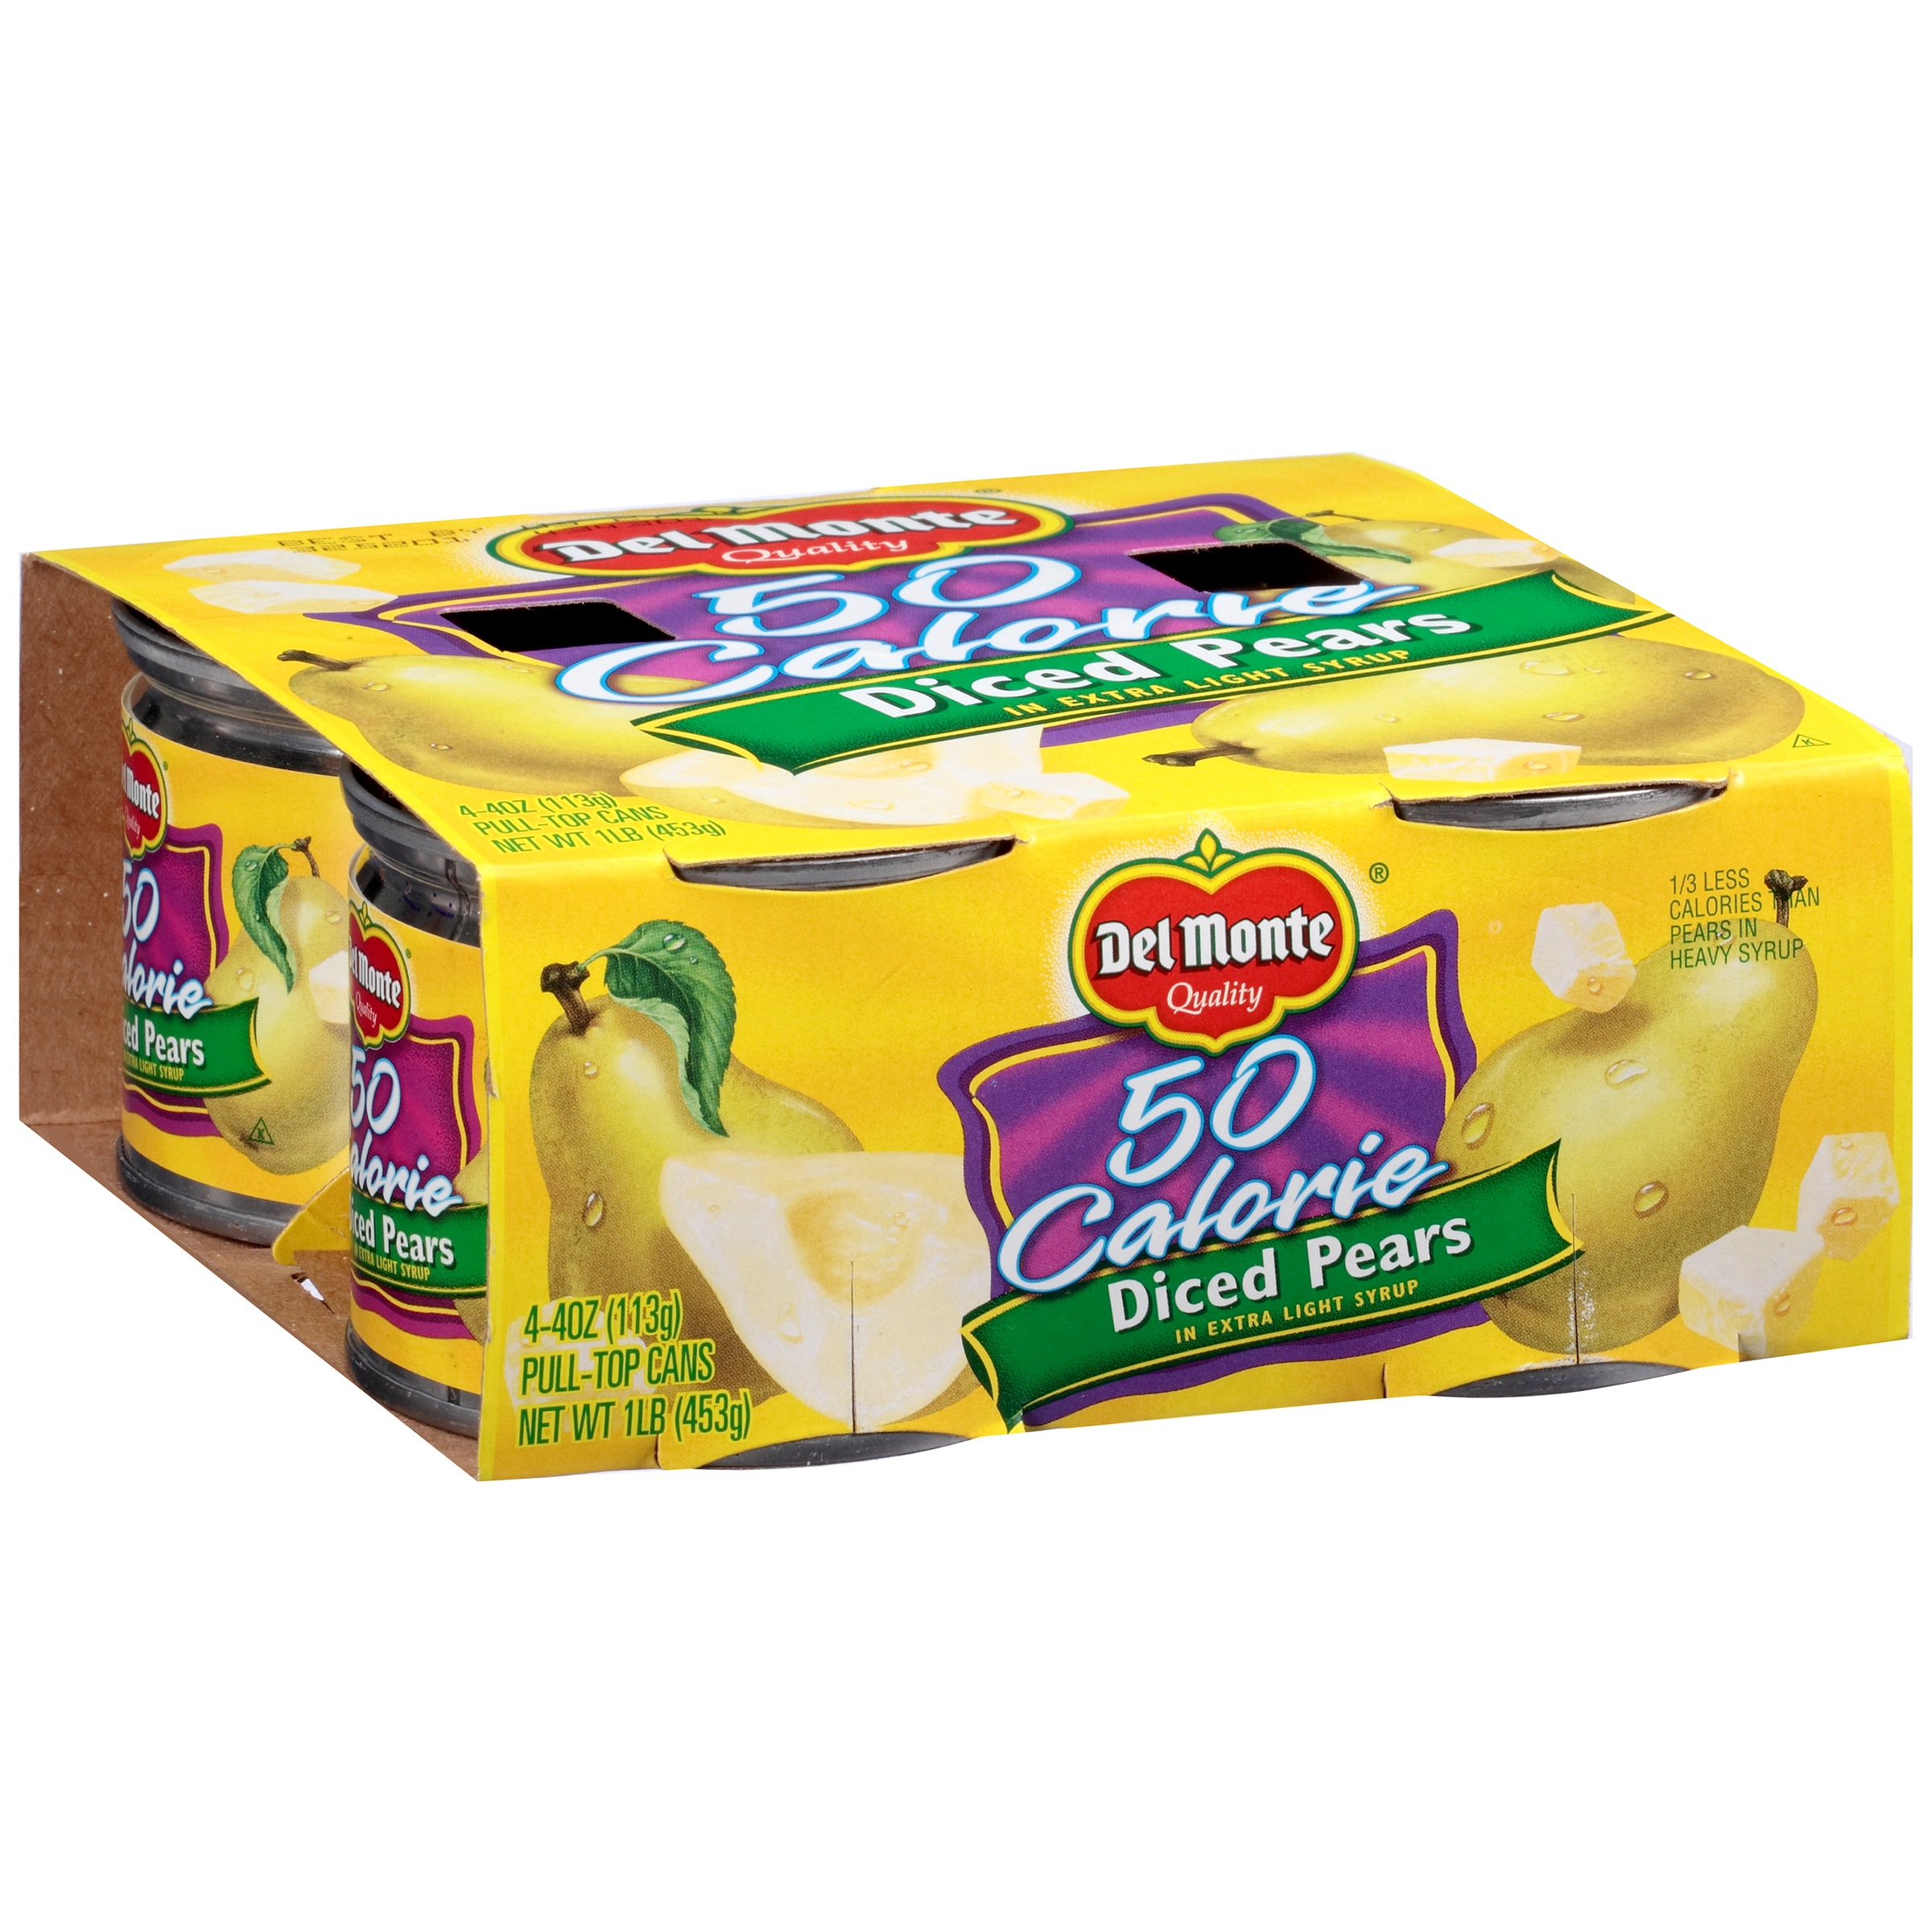 Del Monte® Diced Pears in Extra Light Syrup 4-4 oz. Pull-Top Cans